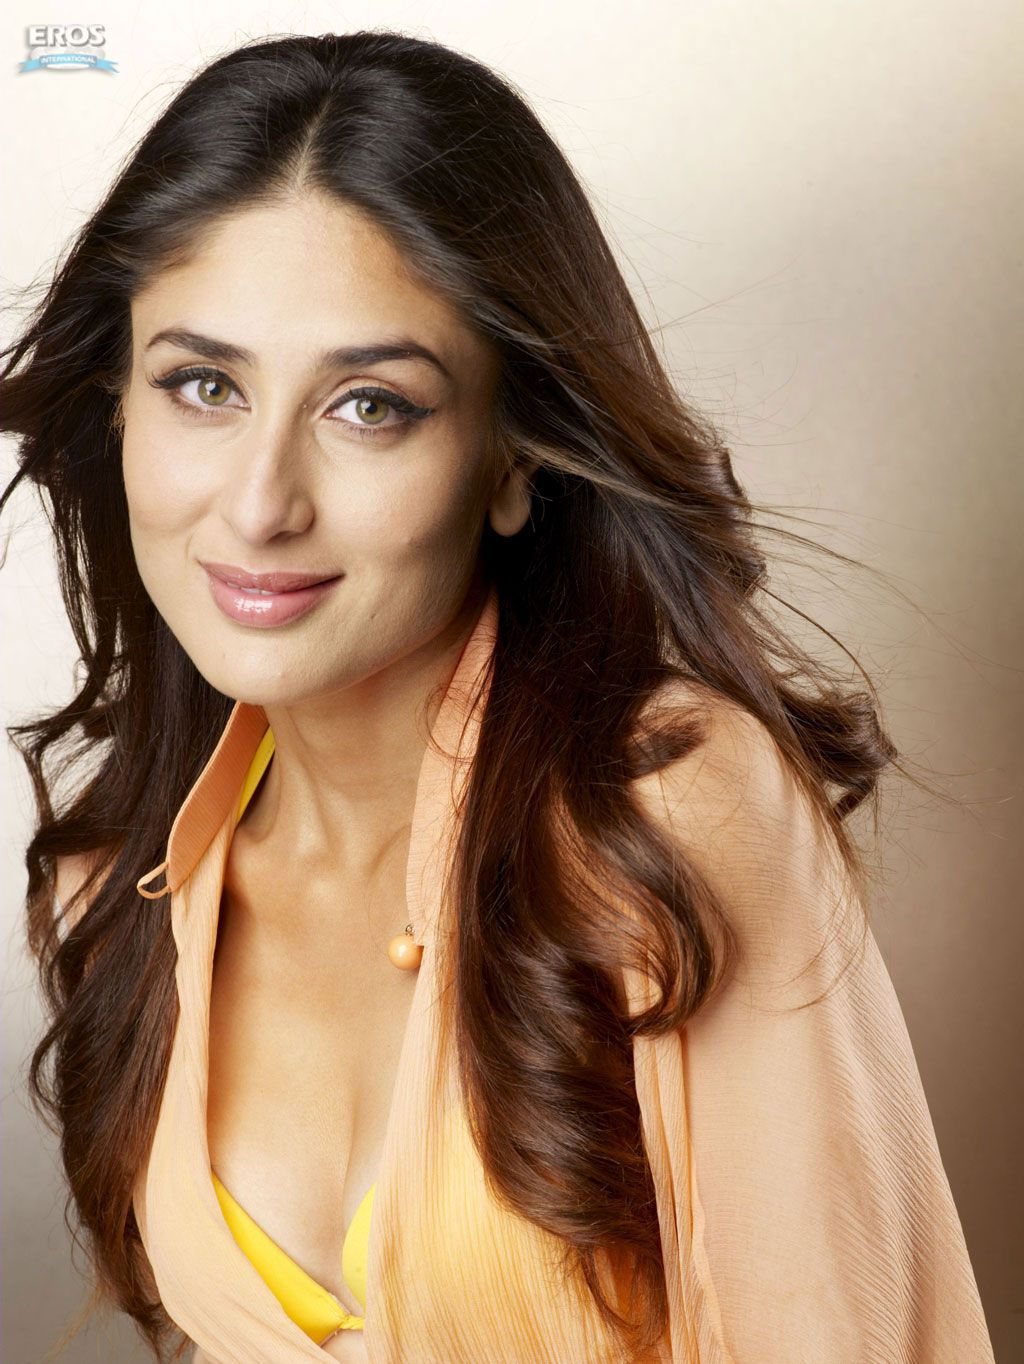 http://3.bp.blogspot.com/-FDONsA_CJP0/Tdg_68pvHrI/AAAAAAAAAHc/law4rFA81os/s1600/Kareena-Kapoor-Yellow-Bra-Dress%2B2.jpg